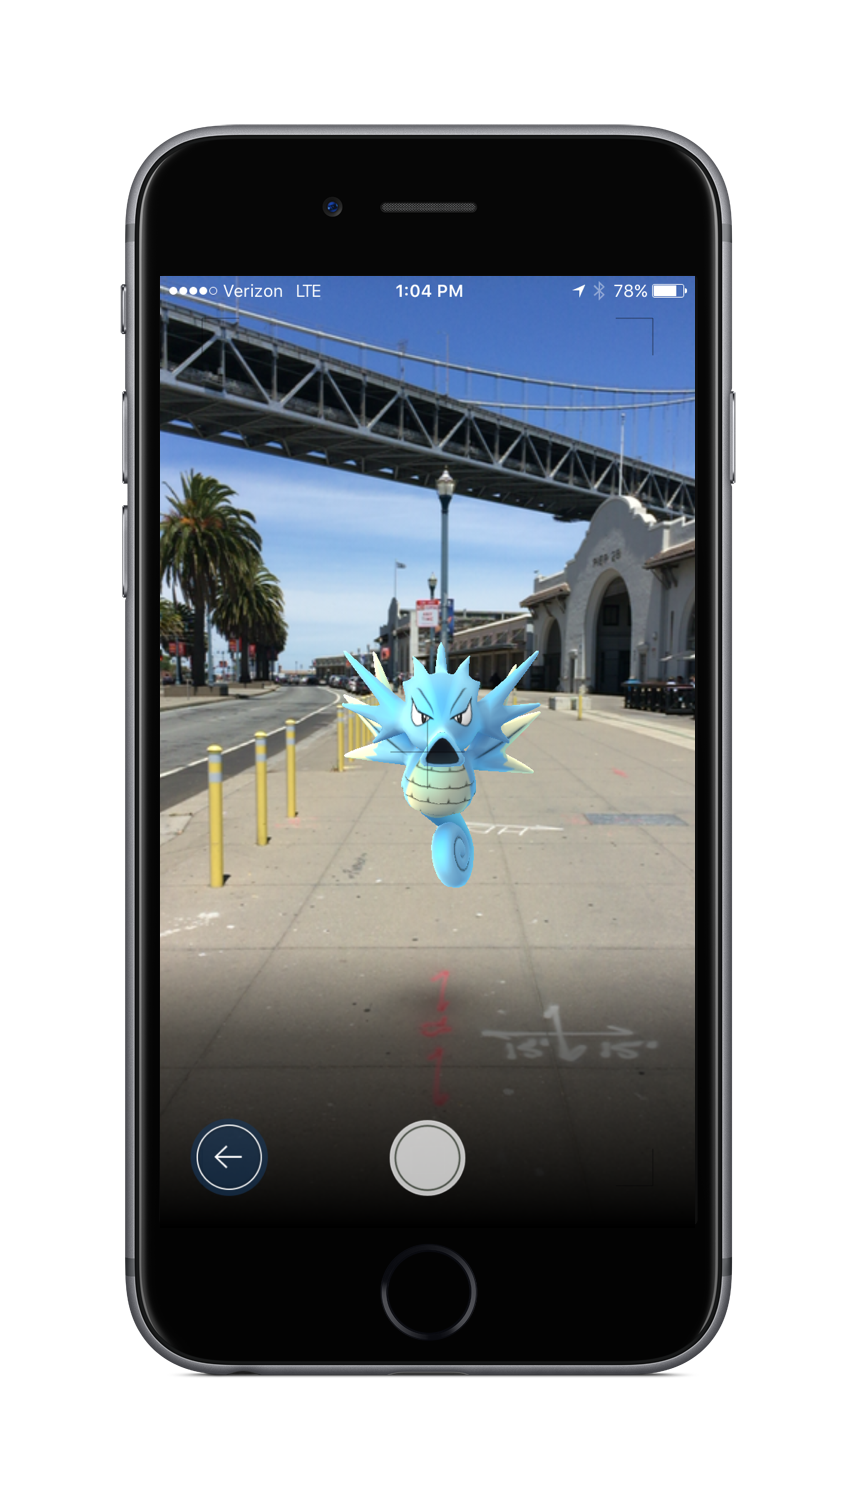 Pokemon Go made augmented reality mainstream, so what does this mean for property?